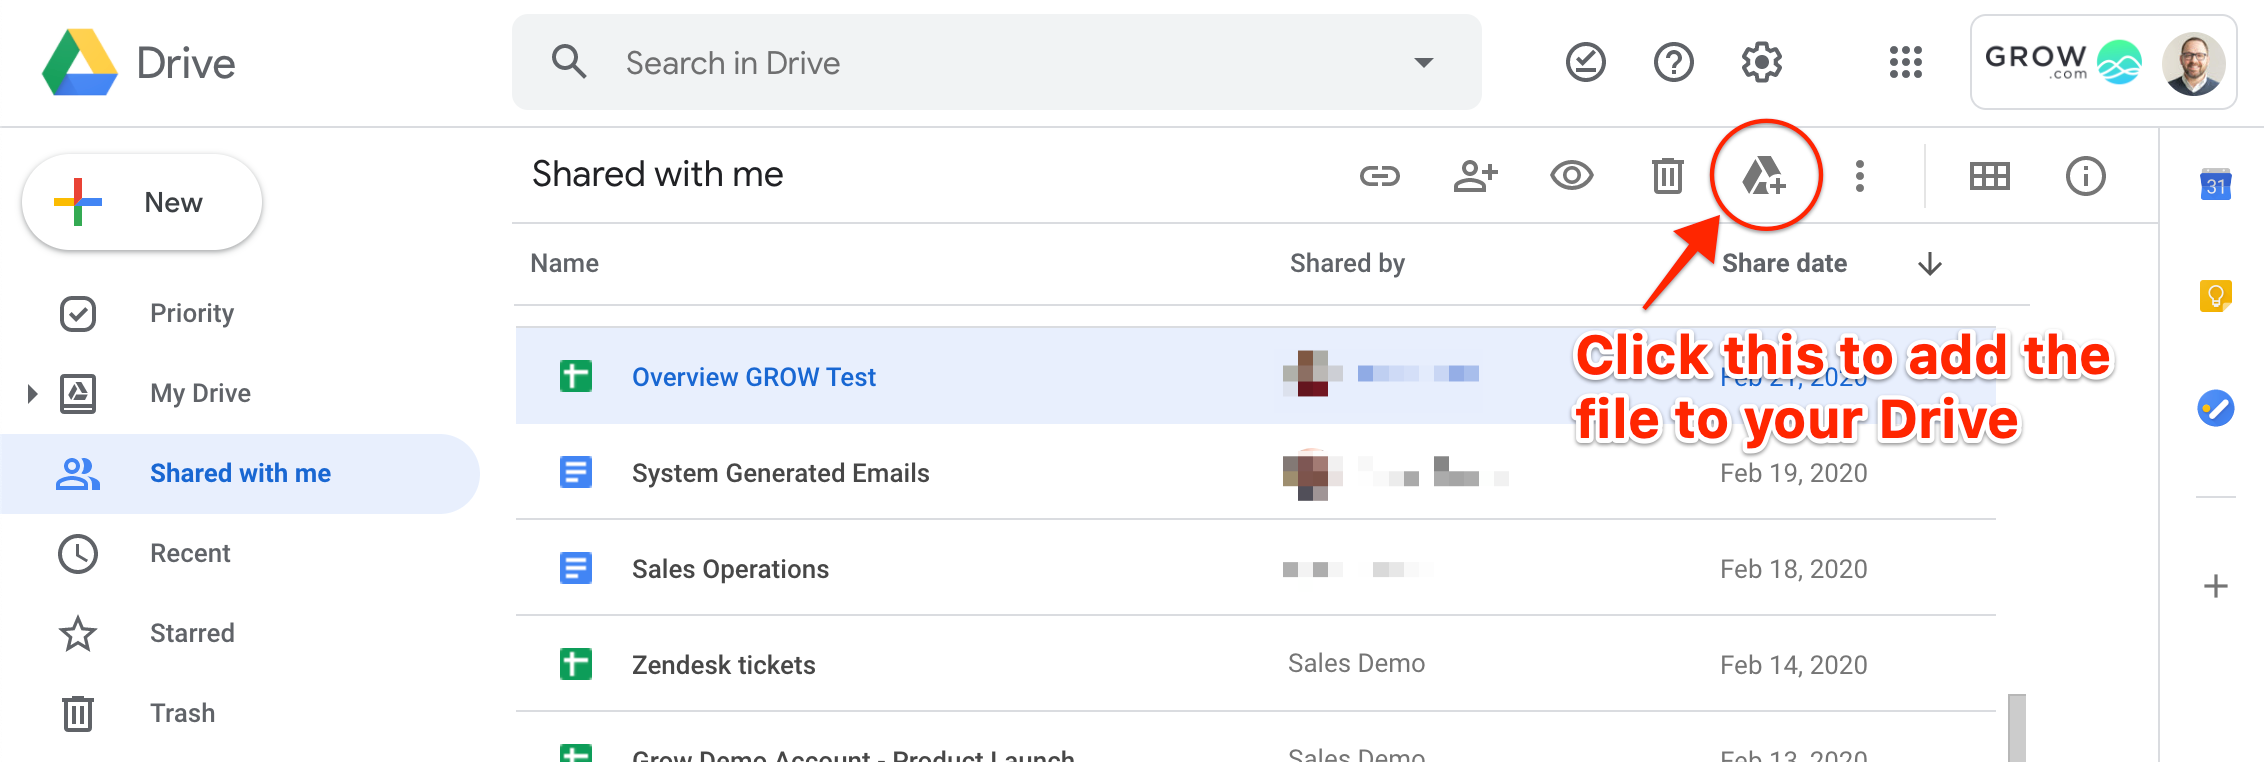 add-shared-file-to-drive.png